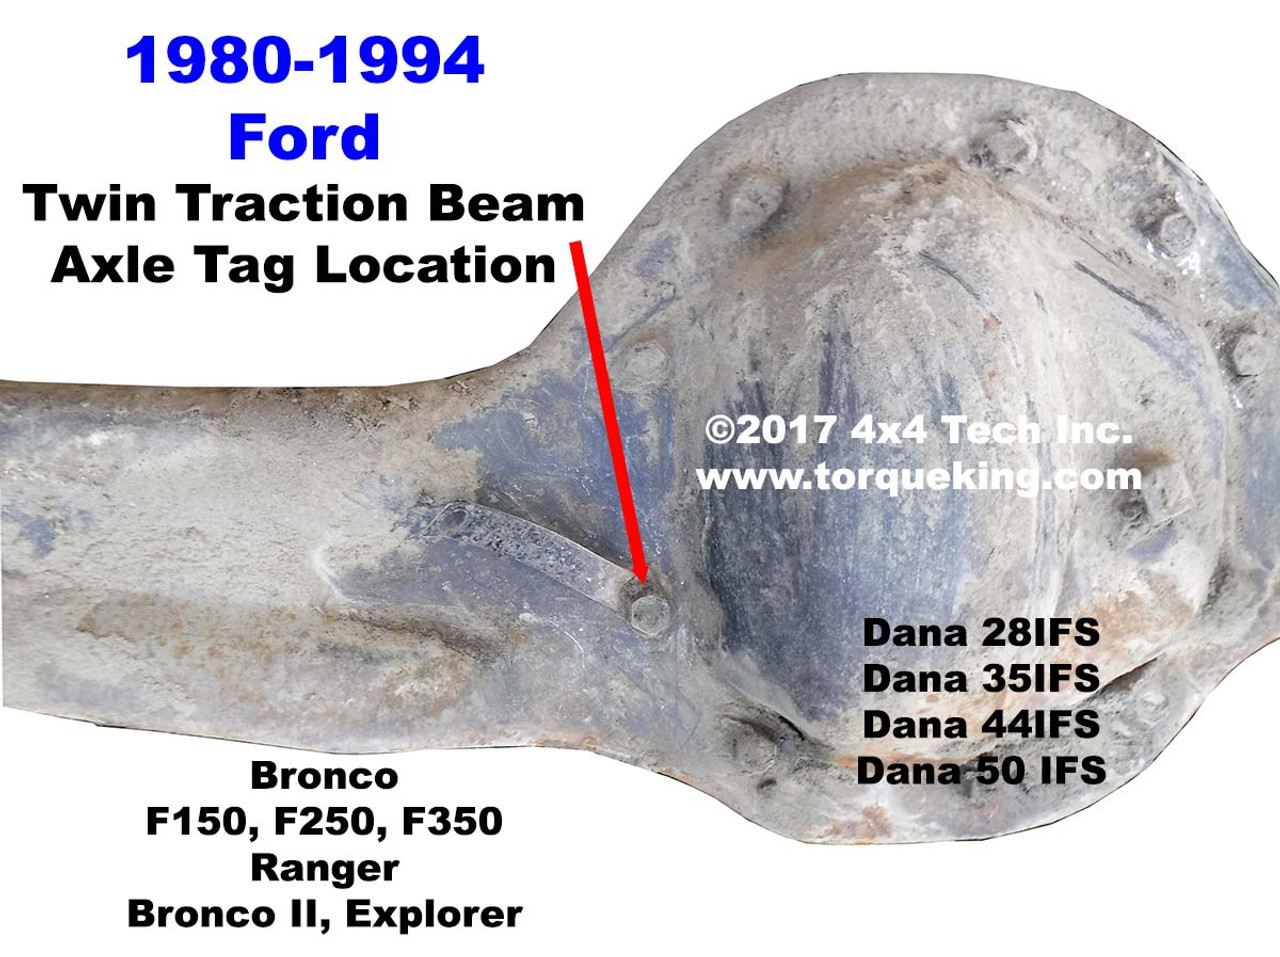 Dana 44ifs Axle Identification For 1980 1996 Ford Bronco F150 Full Size 1994 And Twin Traction Beam Front